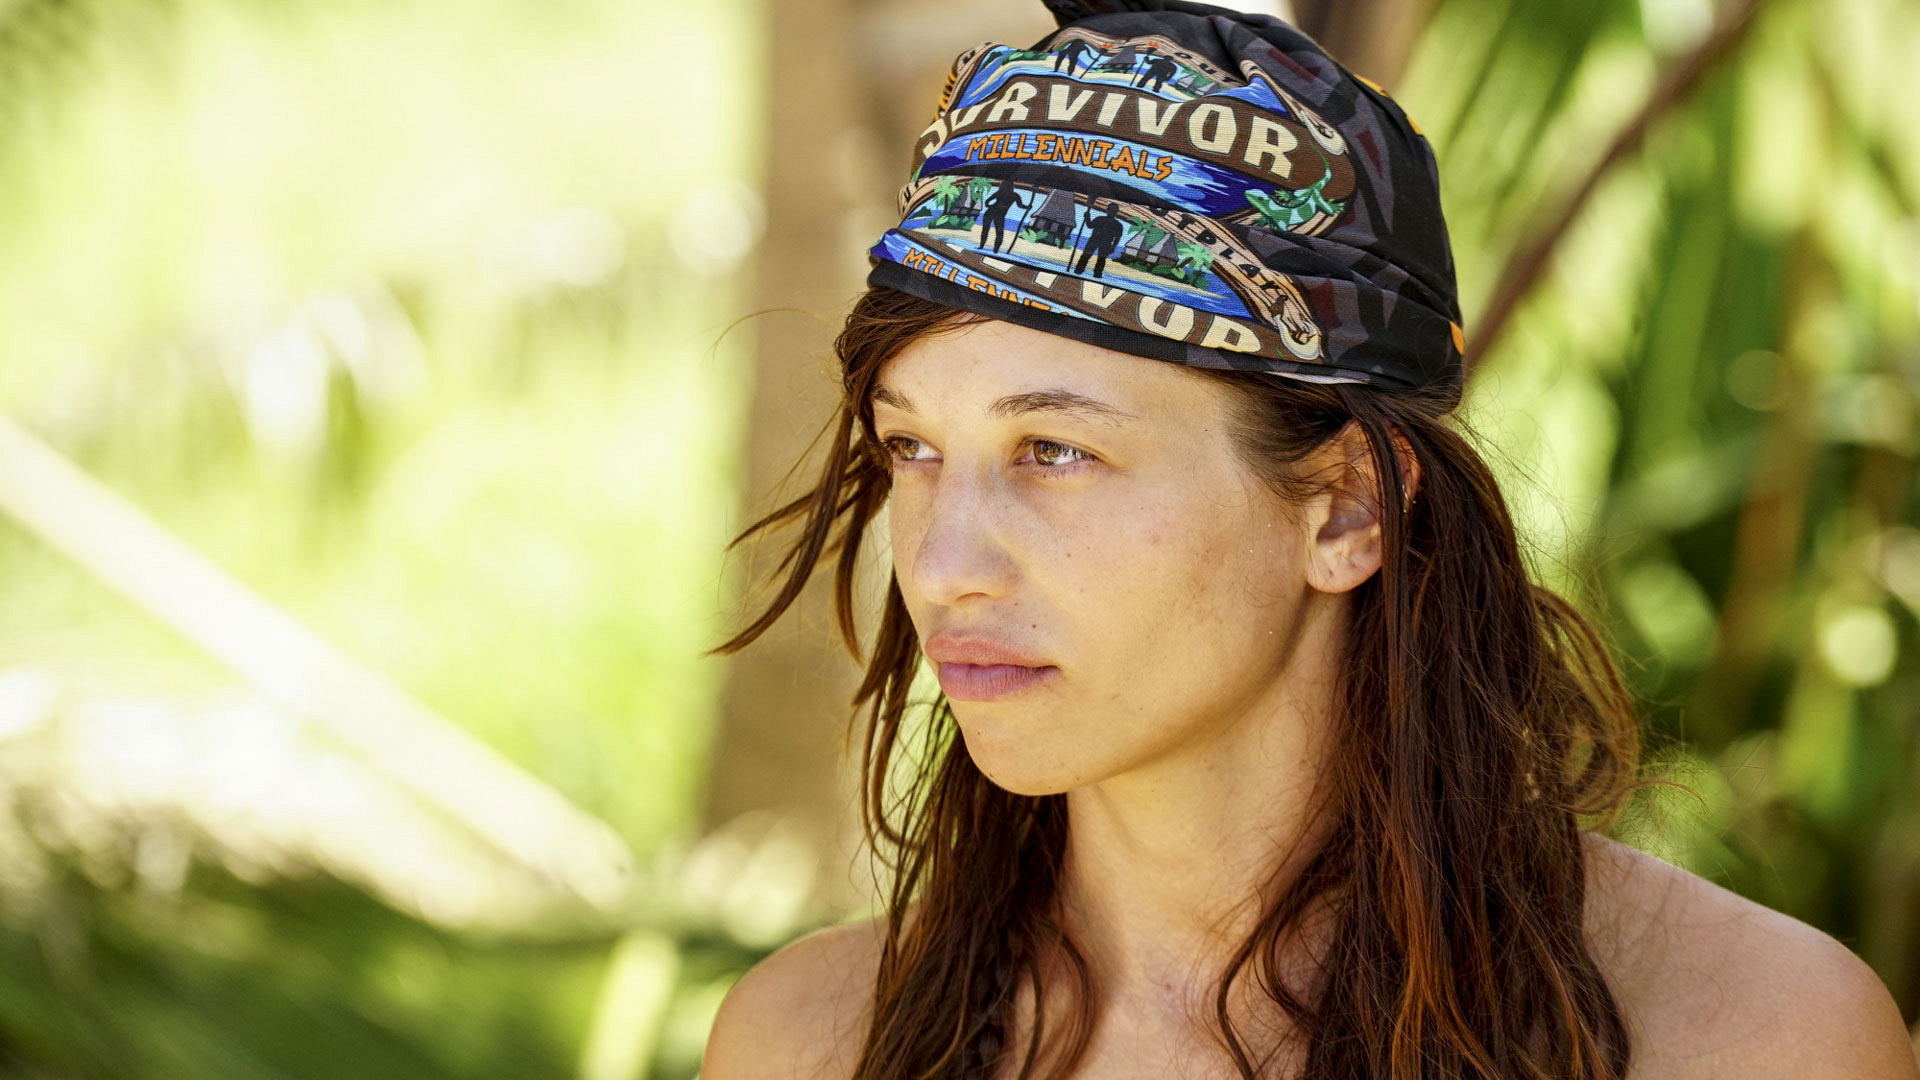 Michelle revels in her Survivor experience.